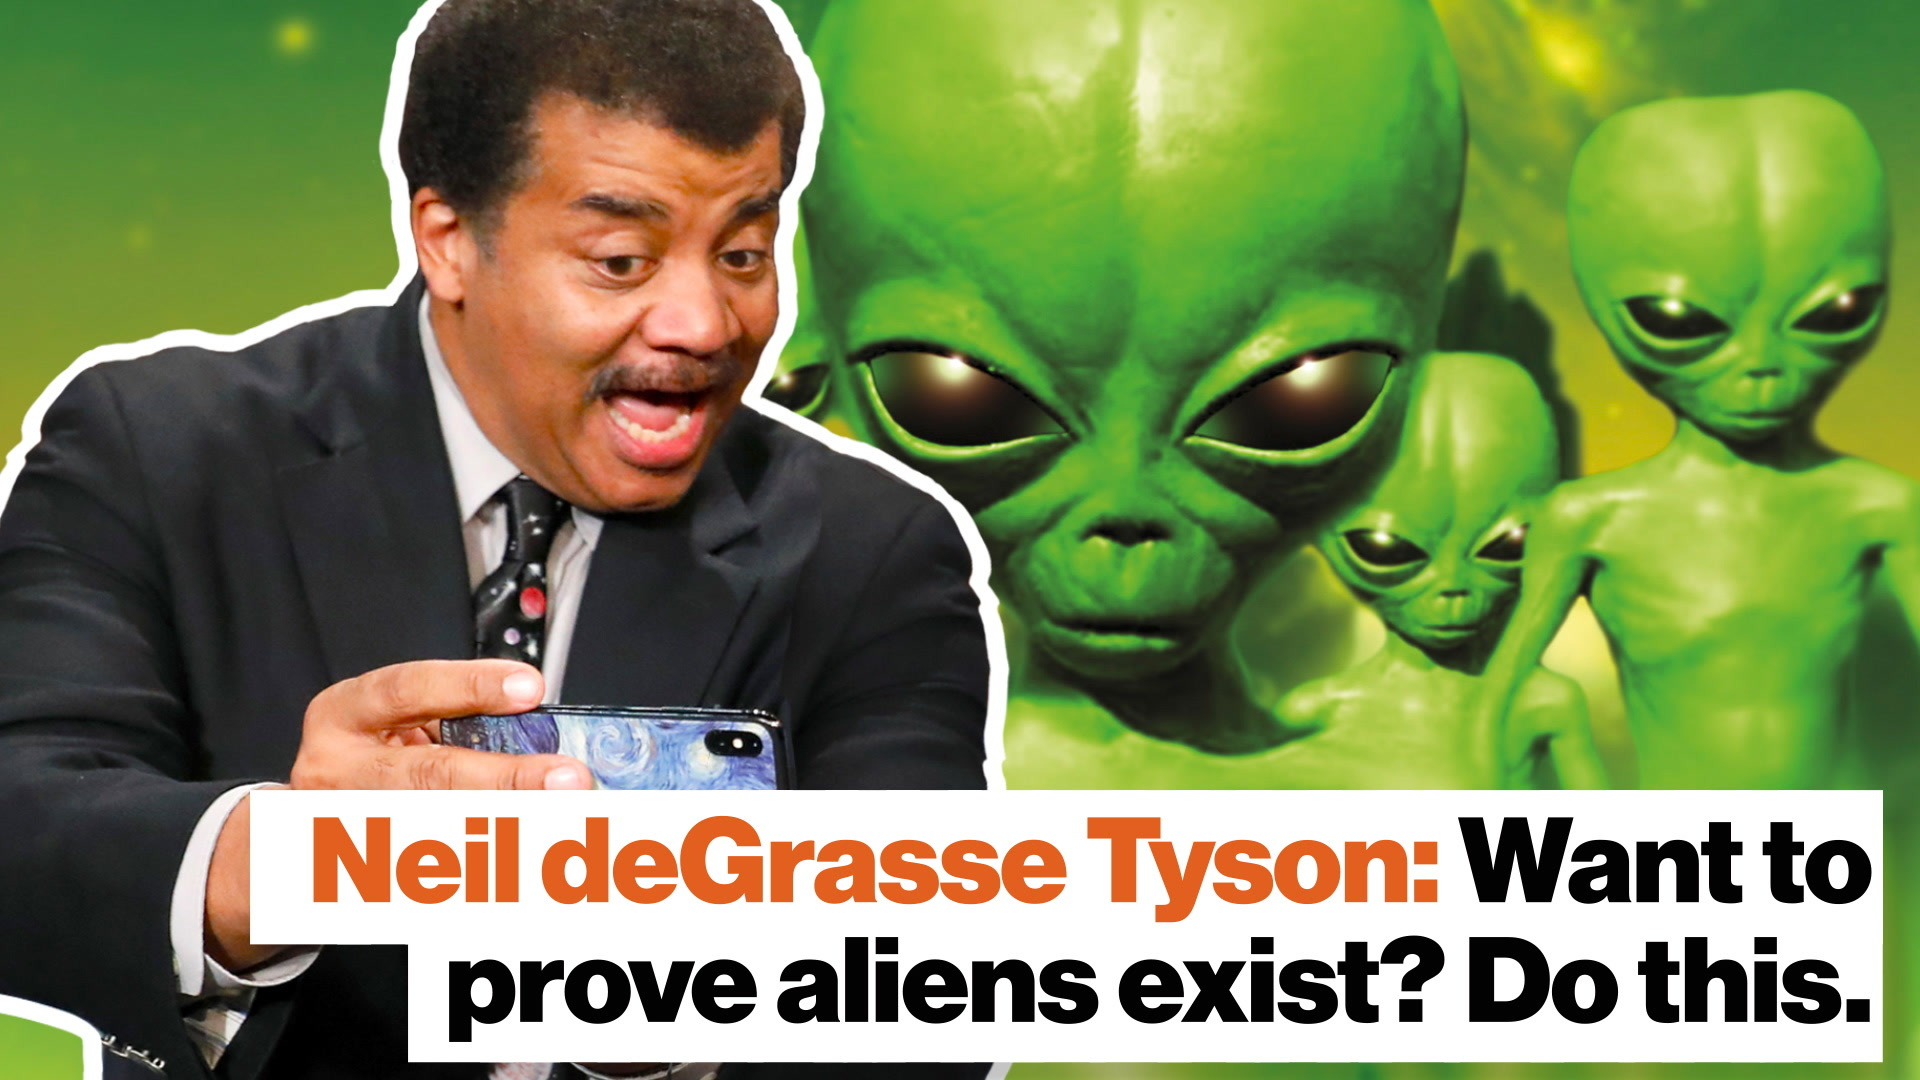 Neil deGrasse Tyson: Want to prove aliens exist? Do this.